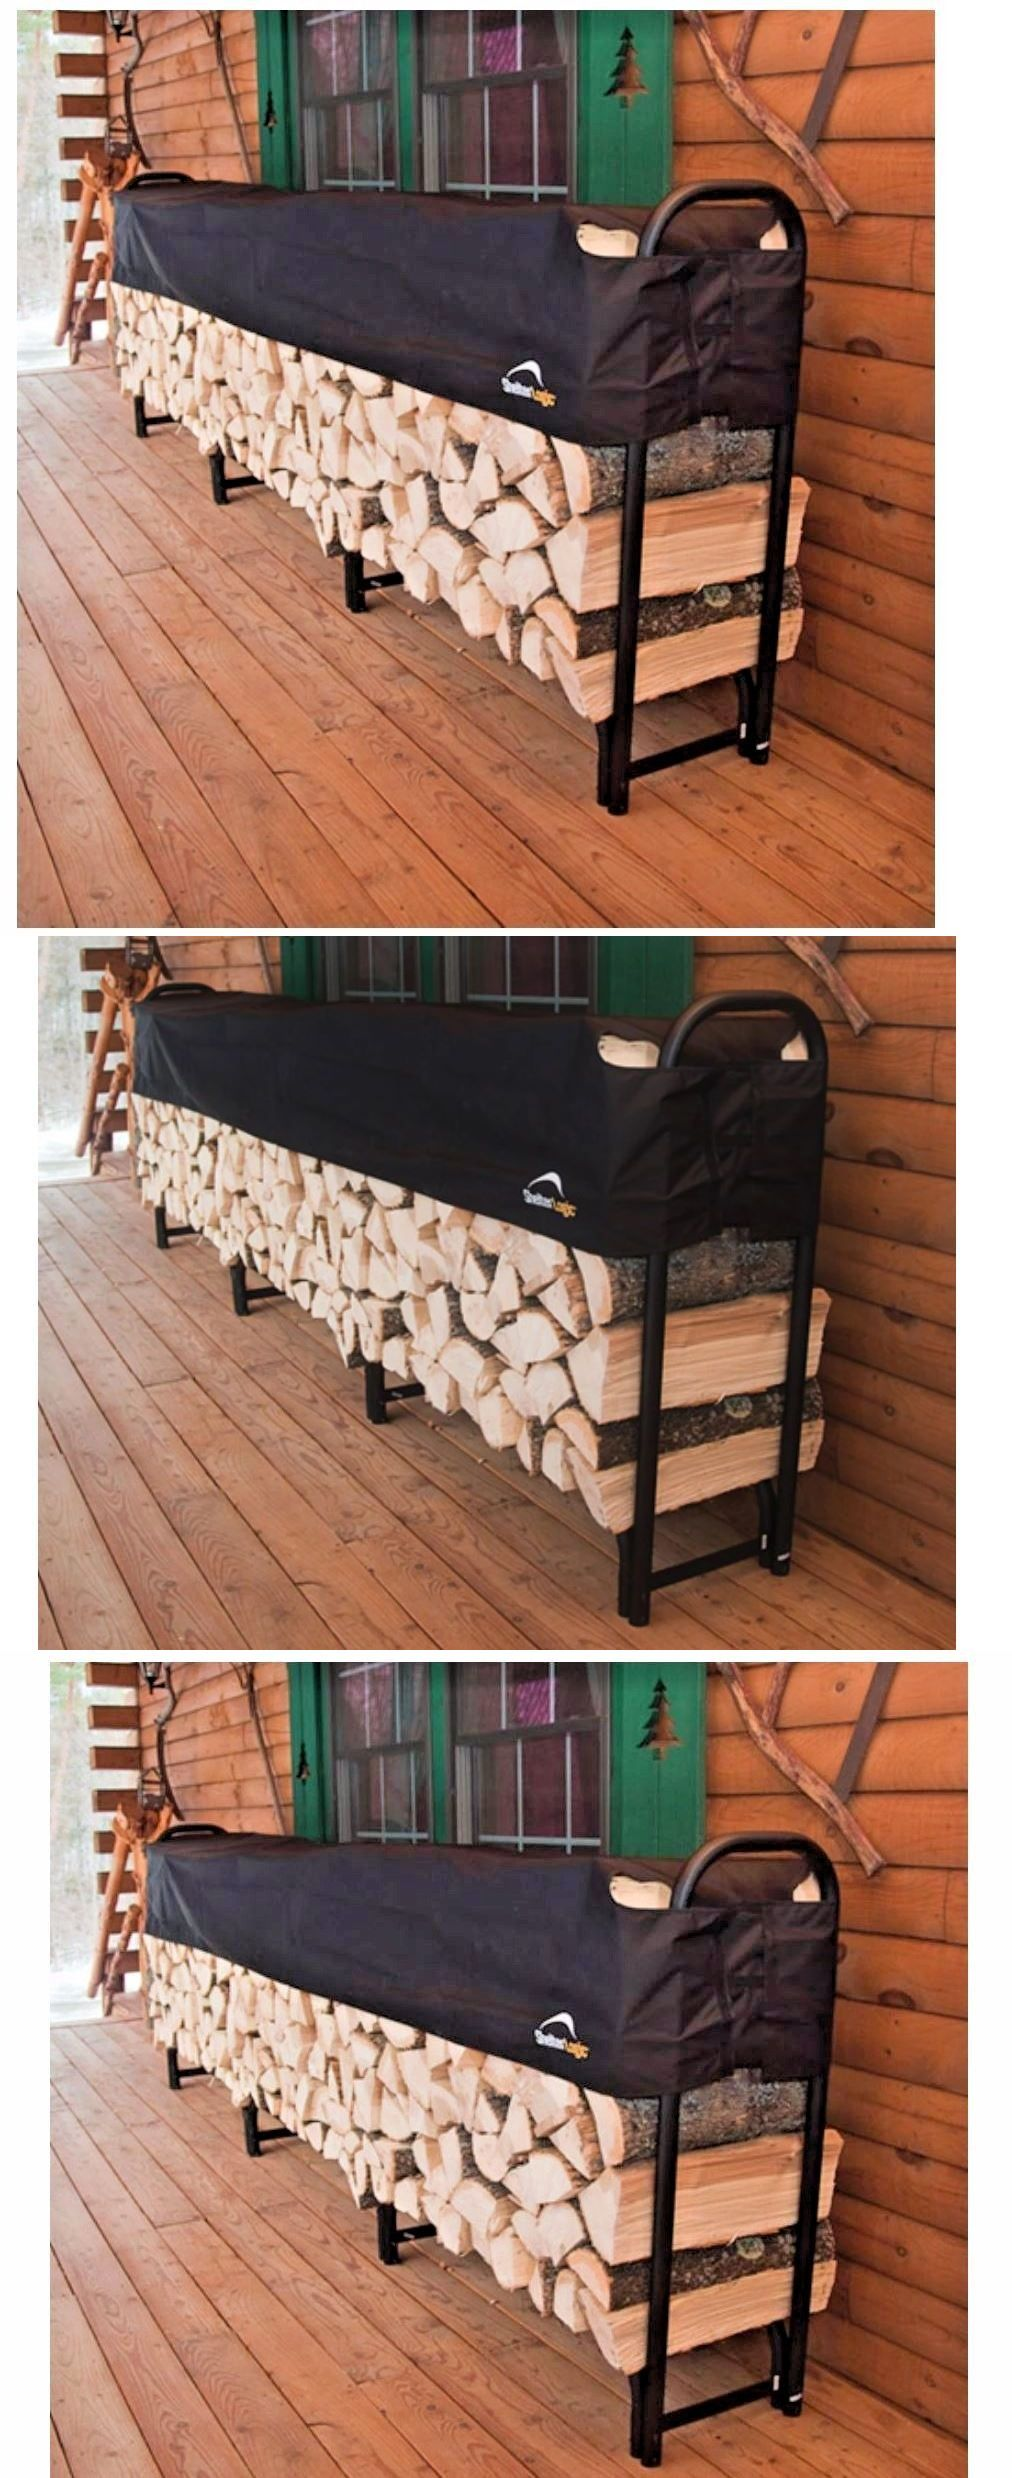 fire pits and chimineas 85916 firewood rack with cover indoor